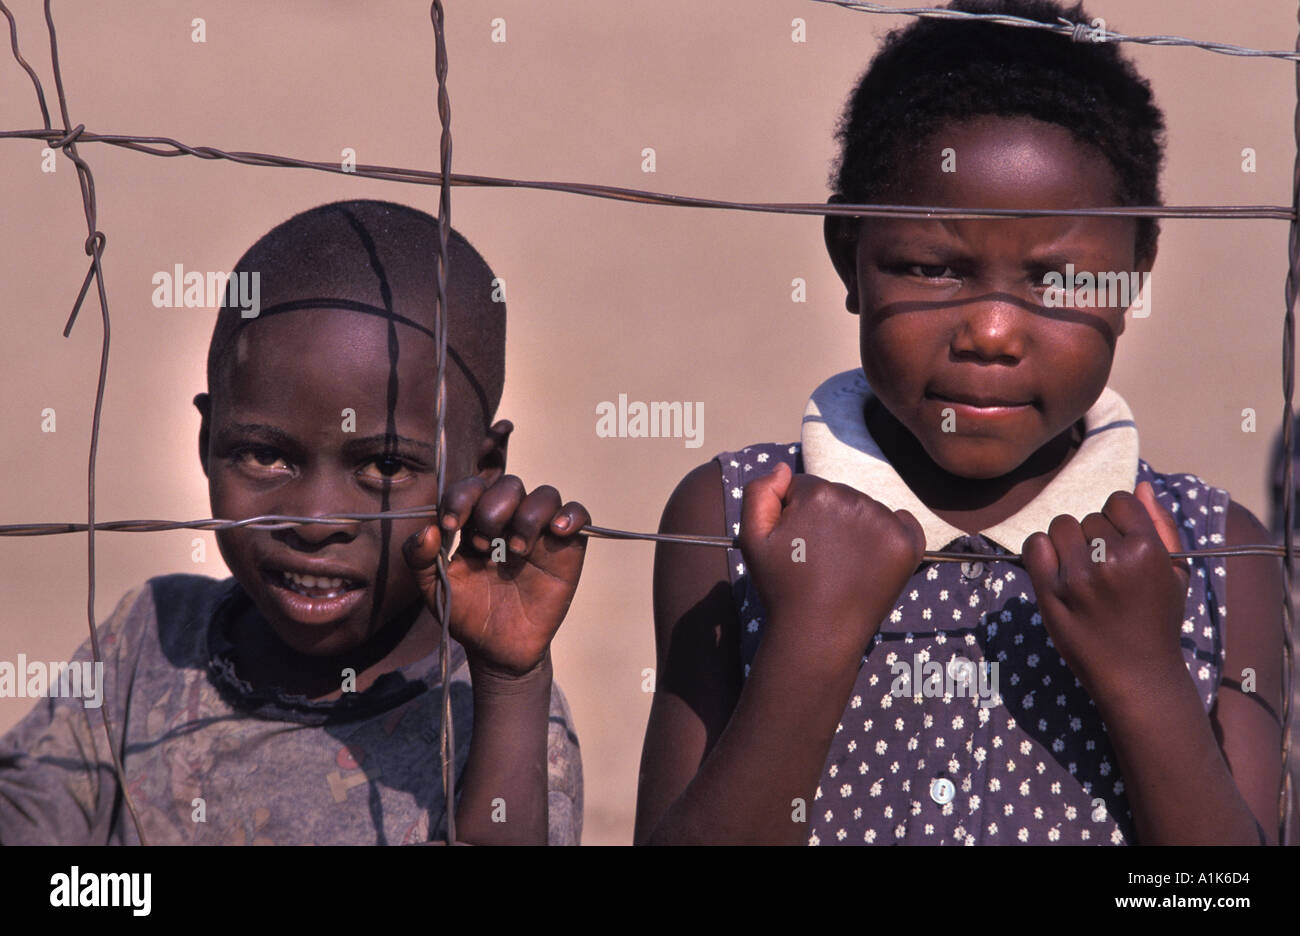 Friendly Herero children pose for a photo Celebrations are held in Okahandja in August each year Okahandja Namibia - Stock Image